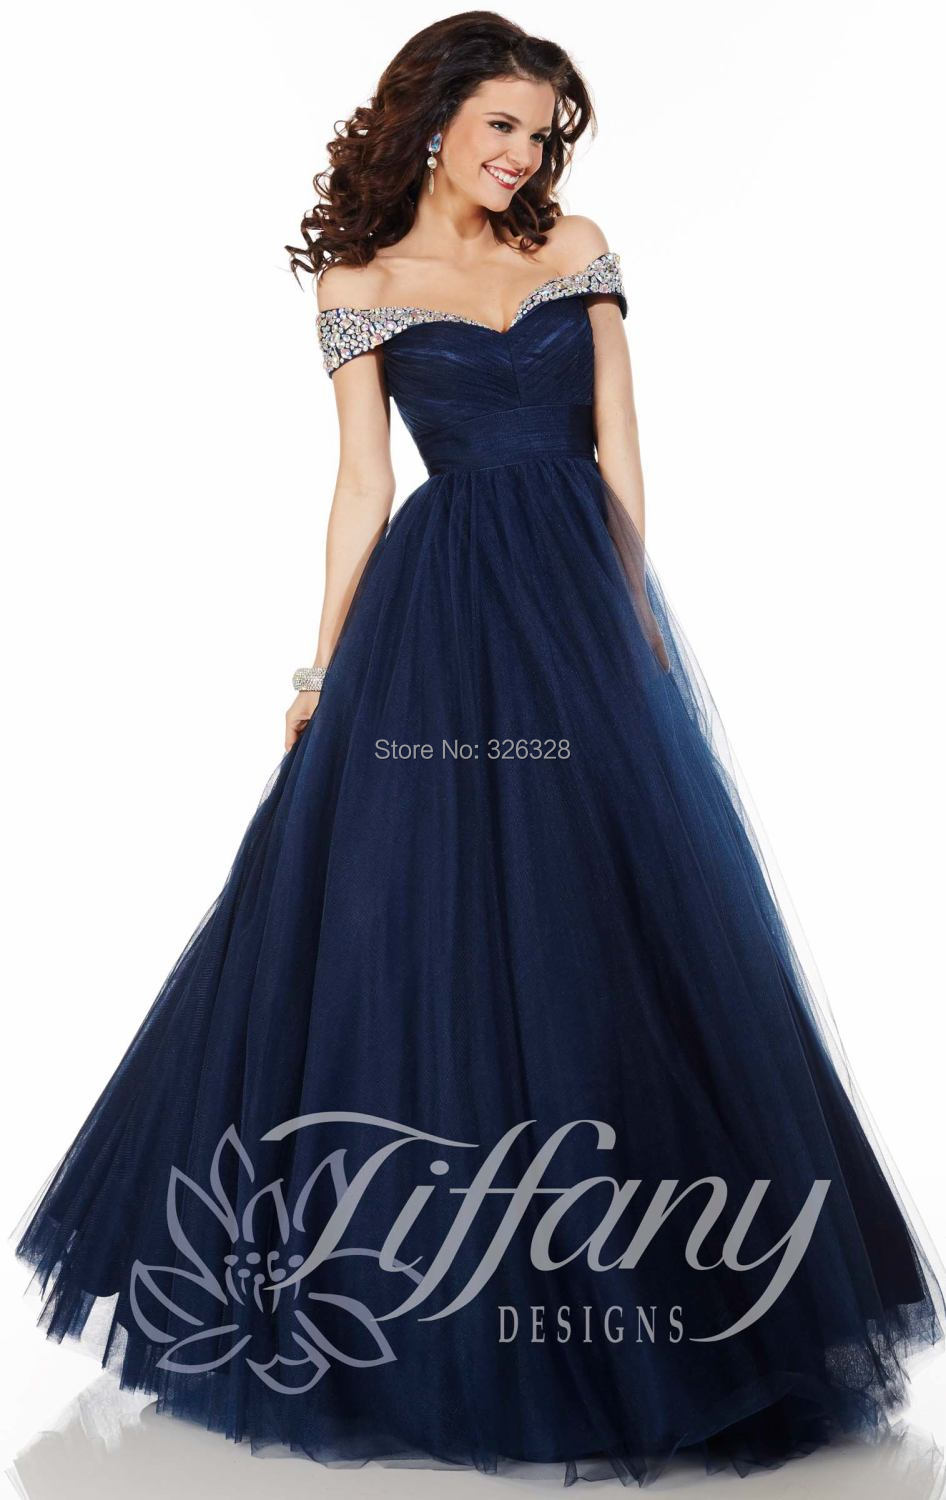 d078946c60 Sweetheart Neckline Off The Shoulder Evening Dresses A Line Navy Blue Tulle  Dress Rhinestones Charming Evening Gown-in Evening Dresses from Weddings ...